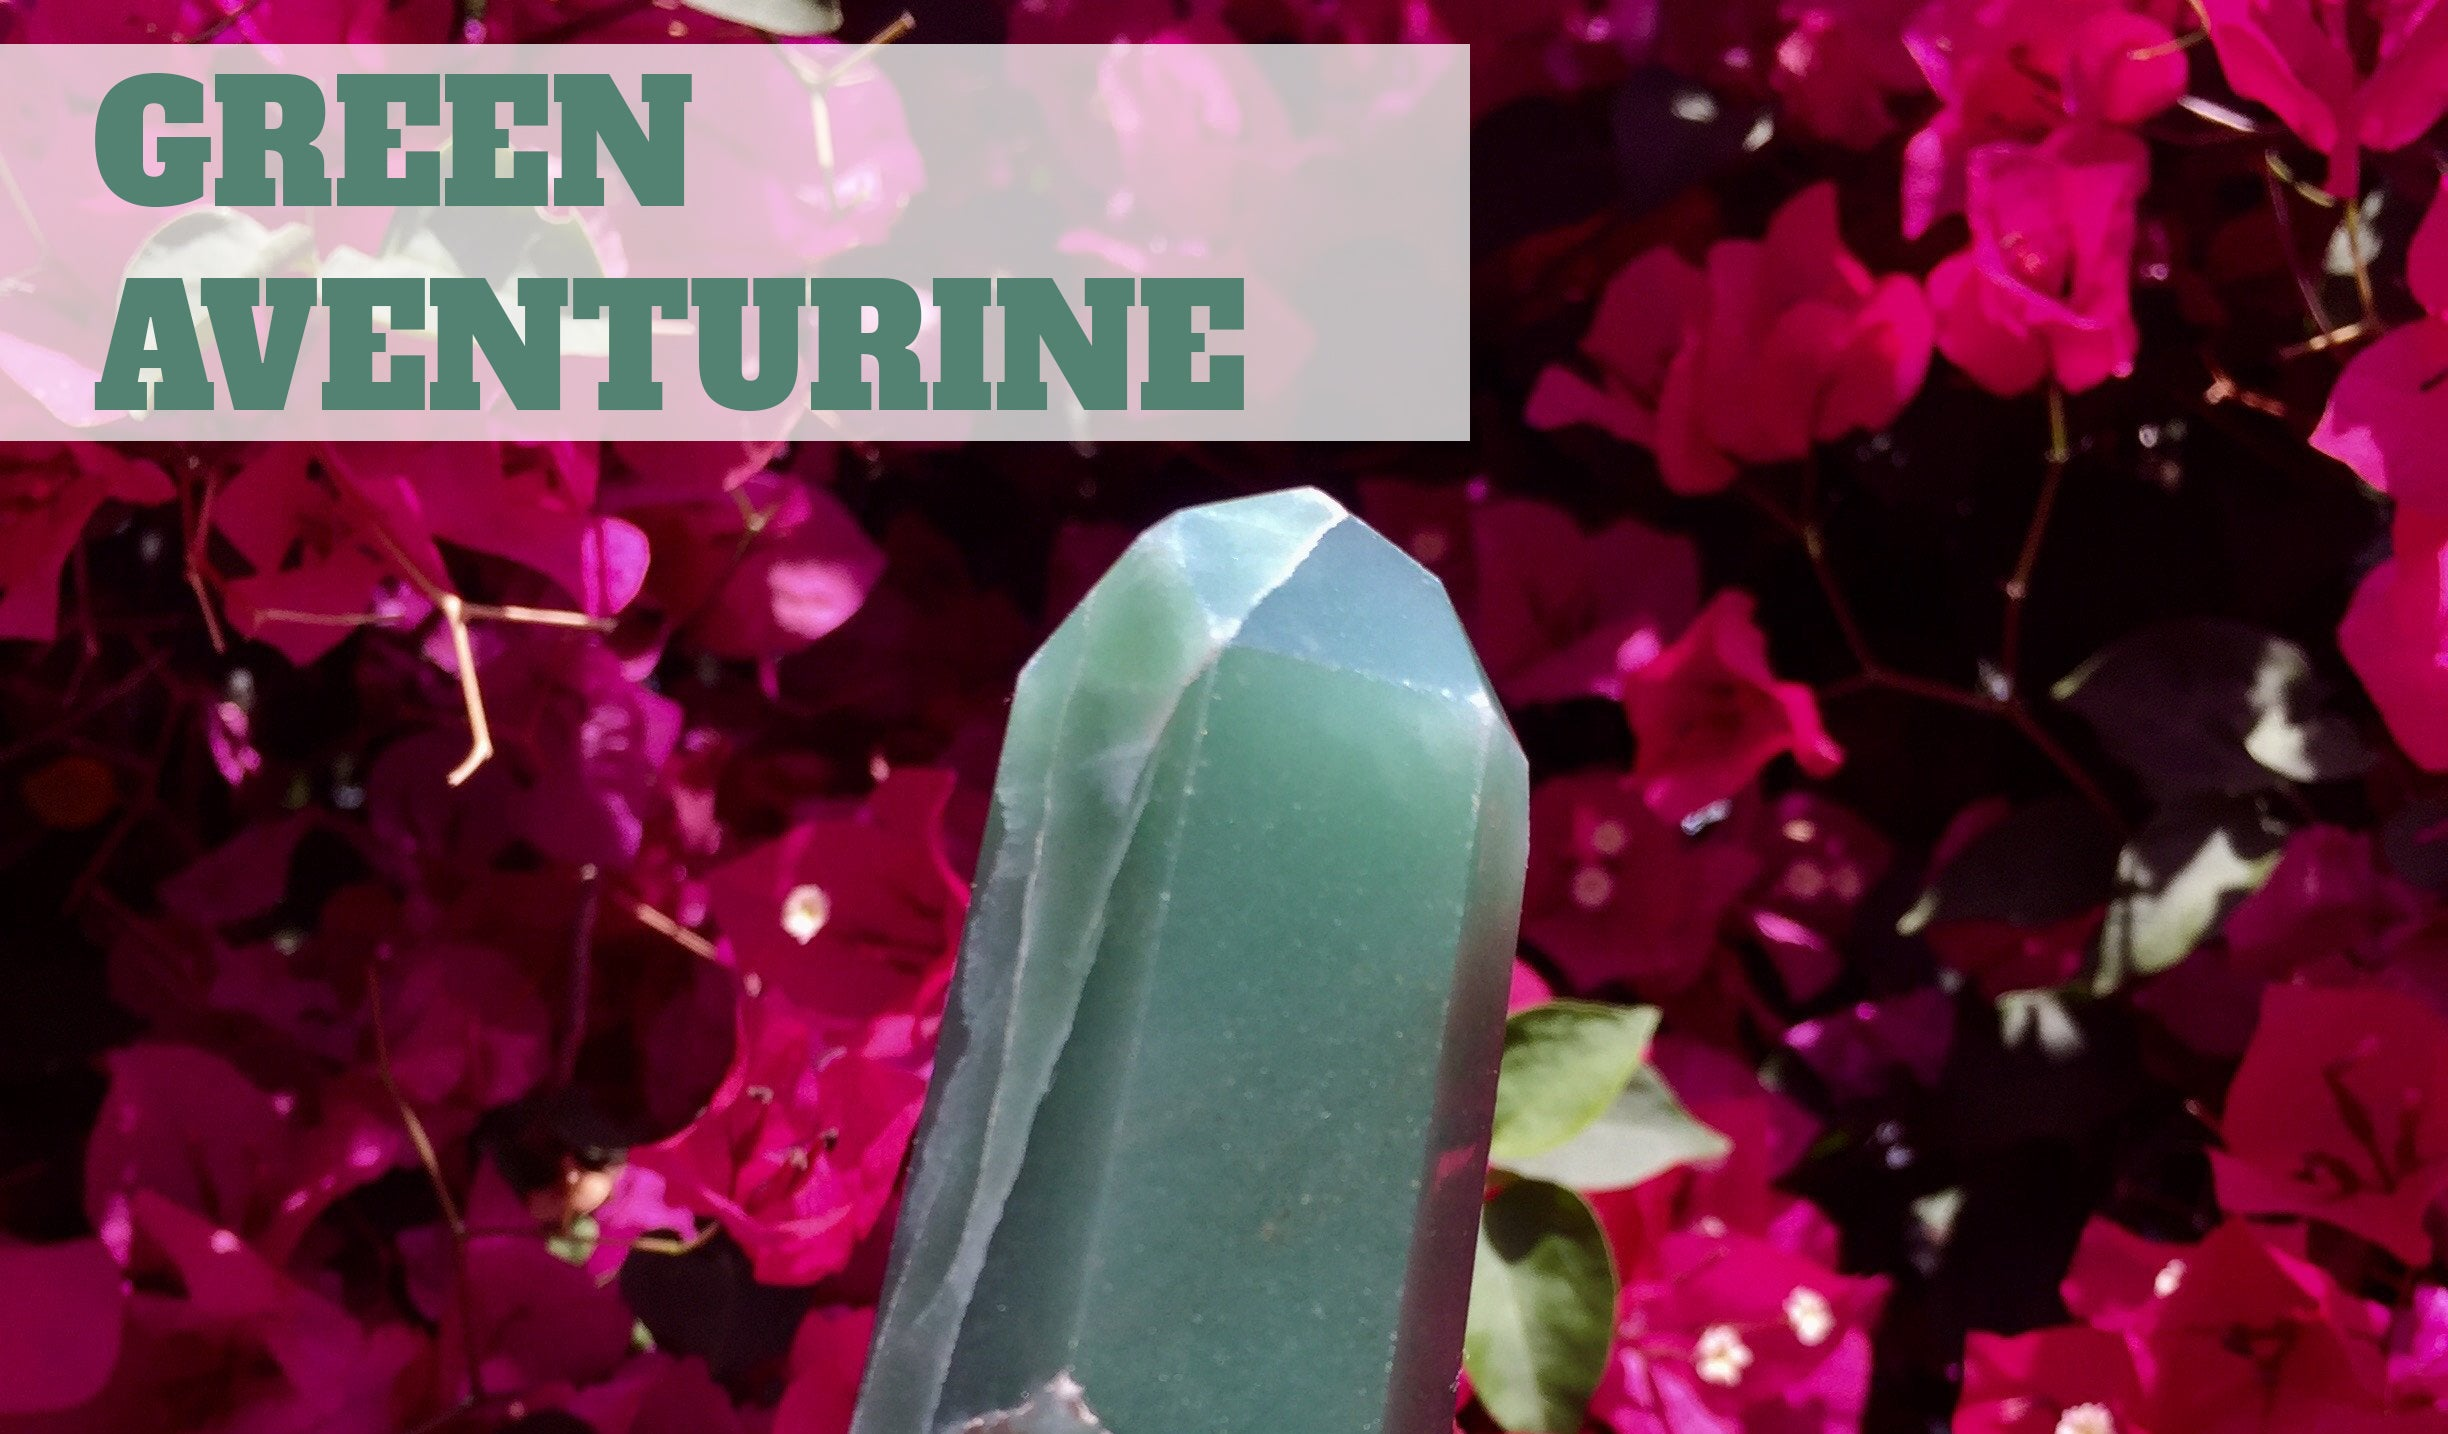 Intro to Wellness: Green Aventurine